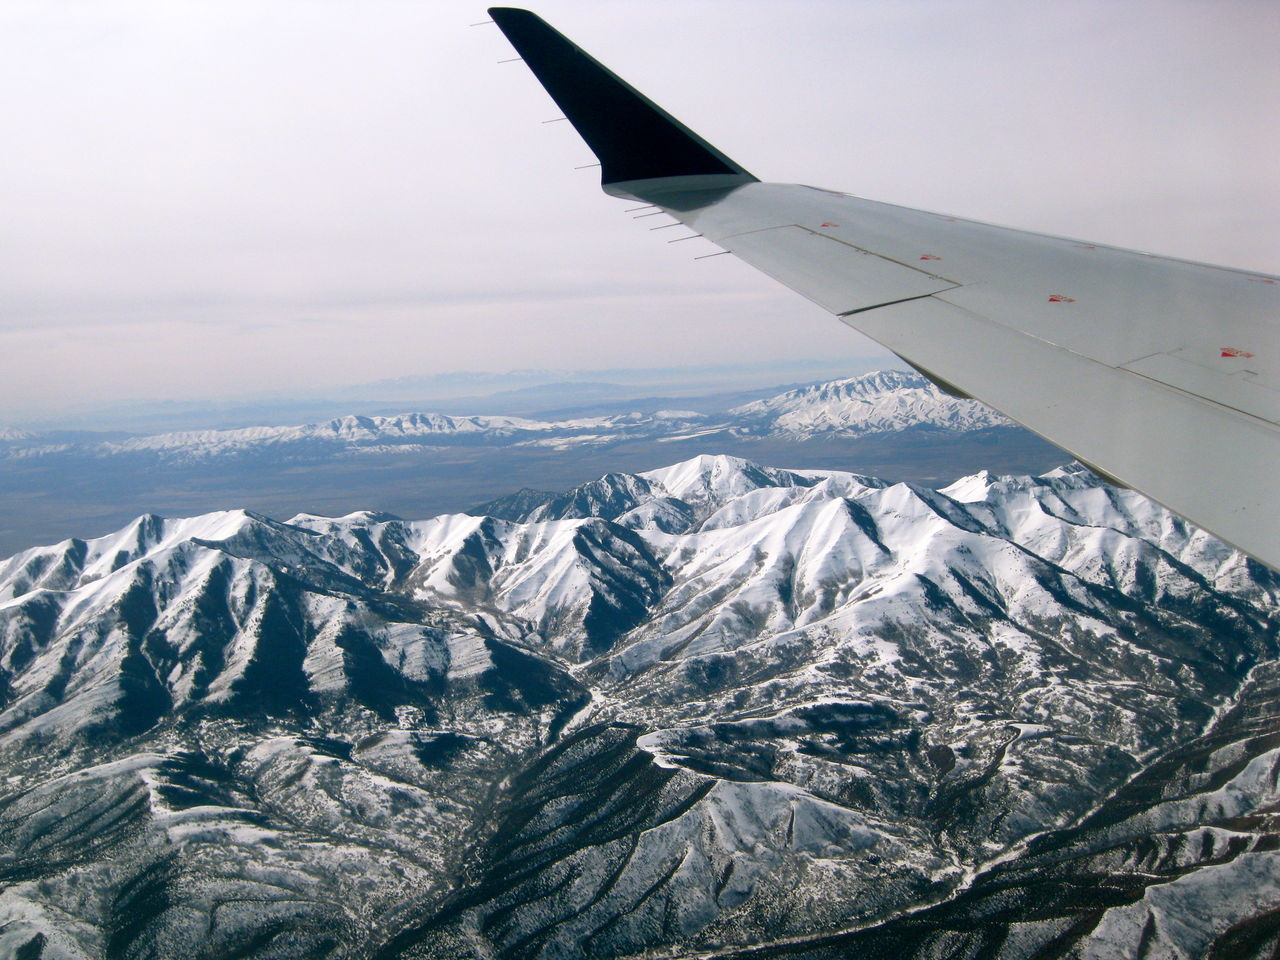 airplane, mountain, nature, airplane wing, scenics, beauty in nature, snow, cold temperature, aerial view, transportation, journey, no people, travel, sky, mountain range, landscape, winter, tranquil scene, air vehicle, outdoors, day, snowcapped mountain, flying, vehicle part